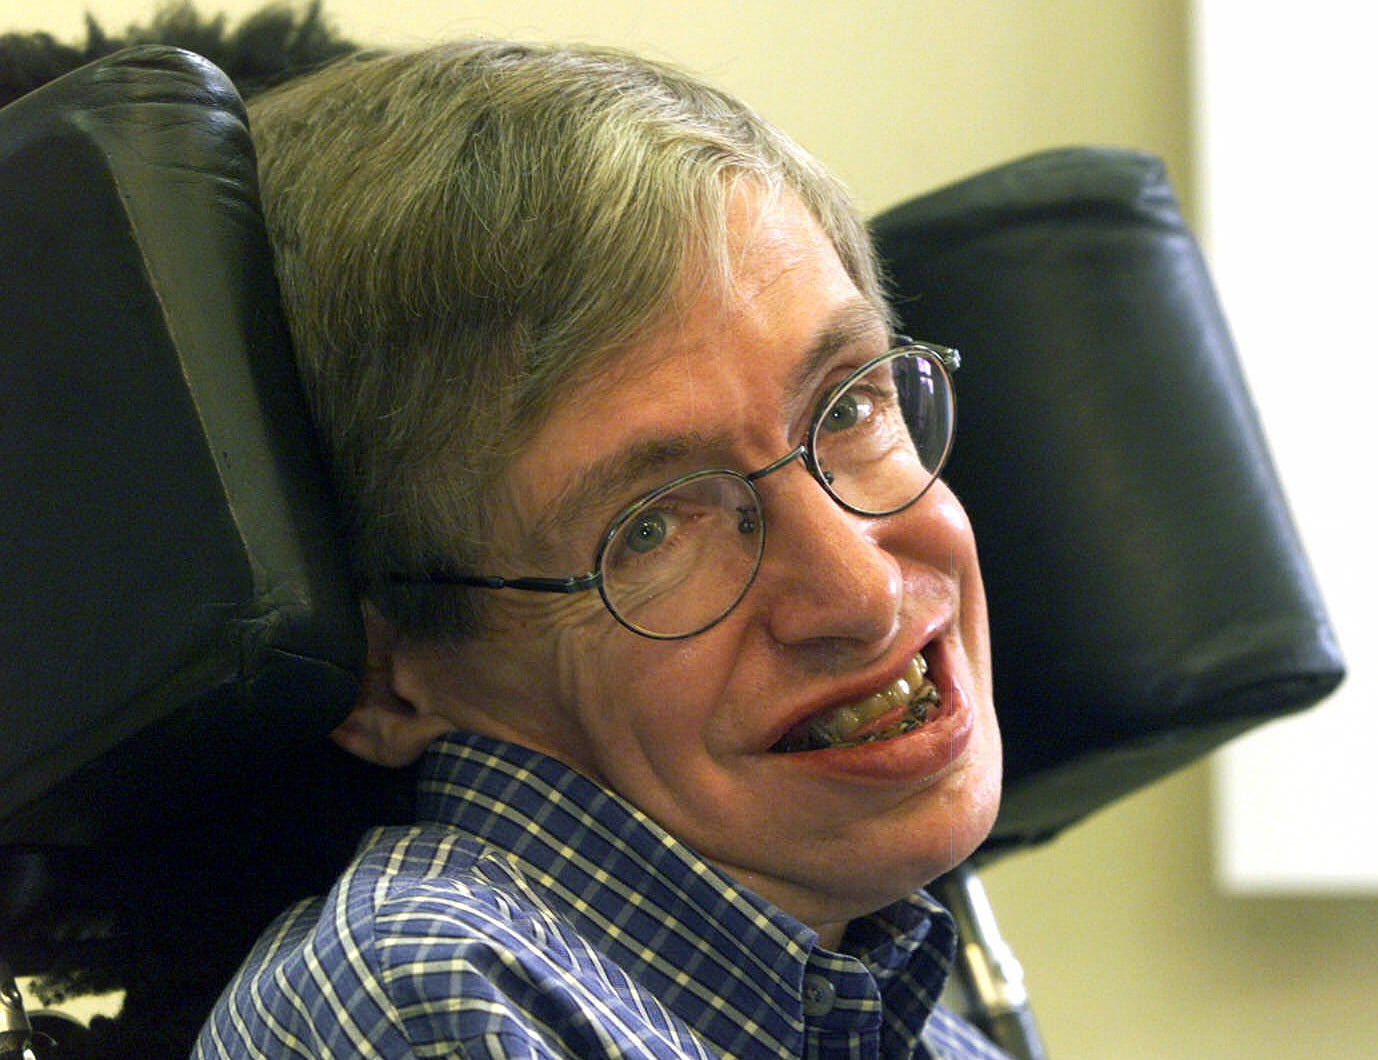 Stephen Hawking wrote 'there is no God' in his final book. It's not the first time he's shared that belief